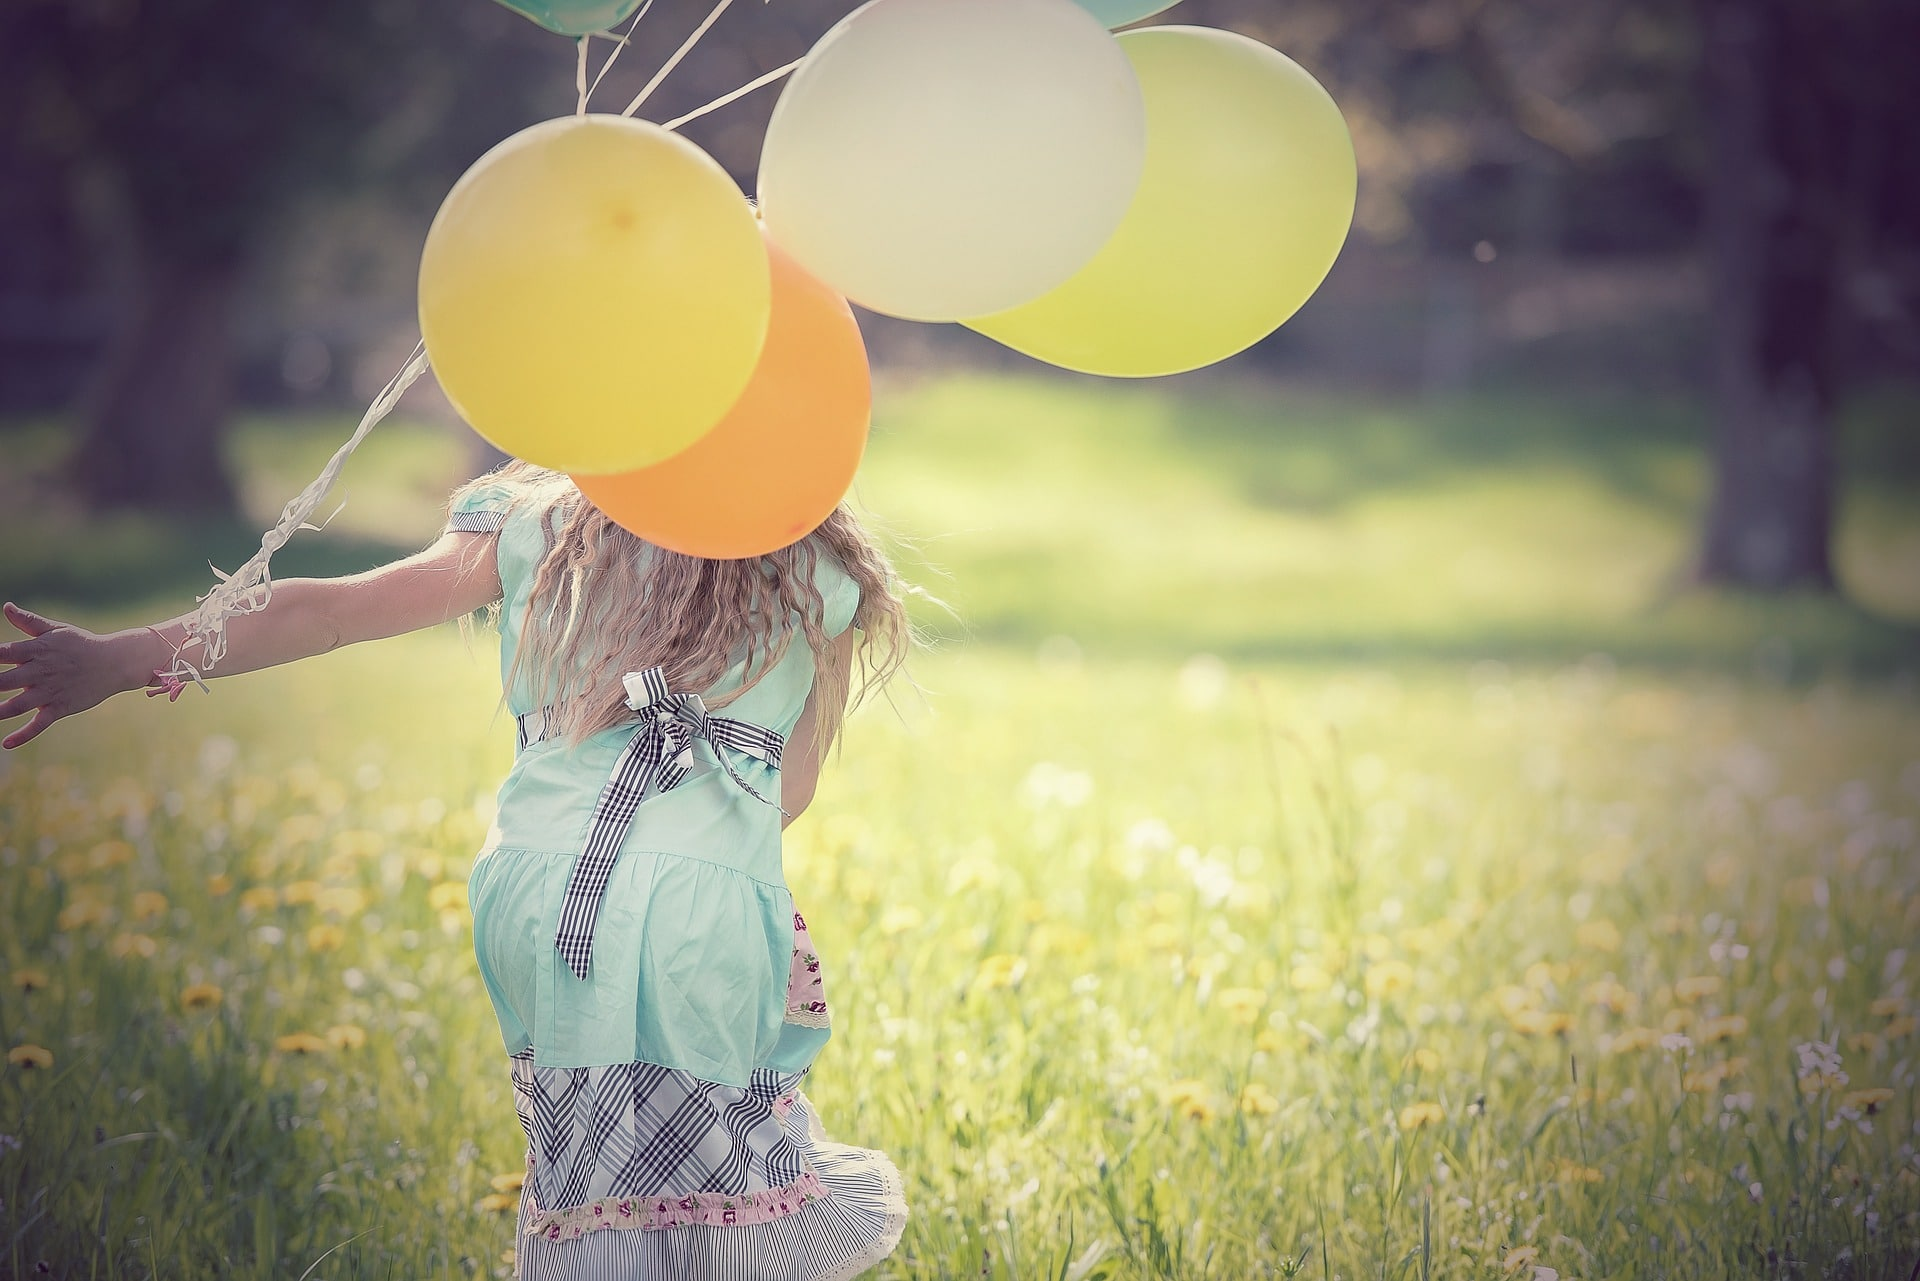 Girl running in field with balloons